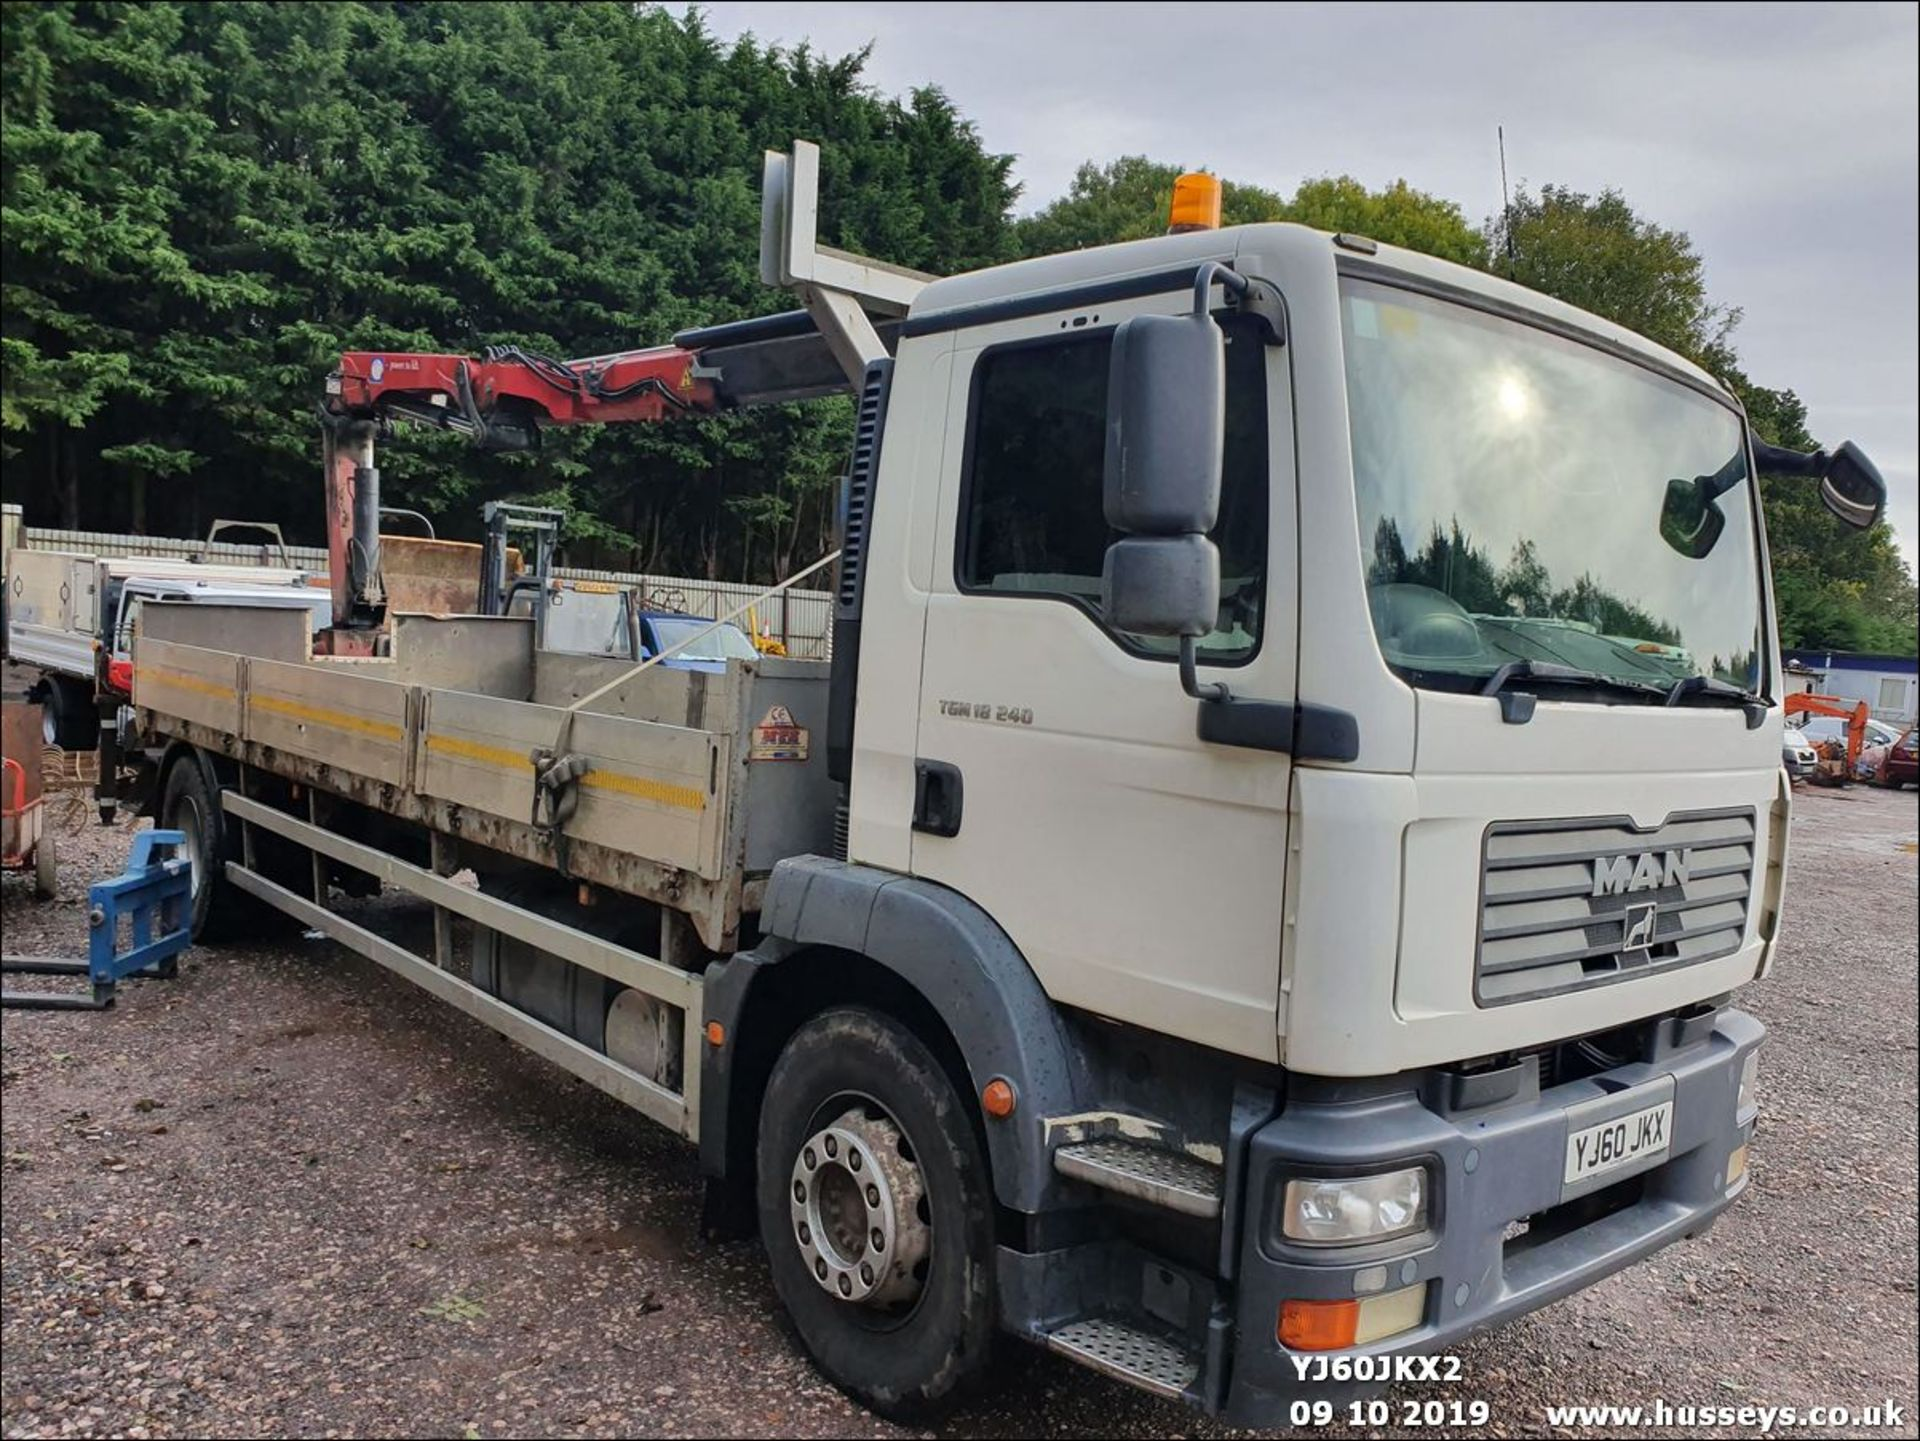 Lot 1510 - 2010 MAN TGM CRANE LORRY